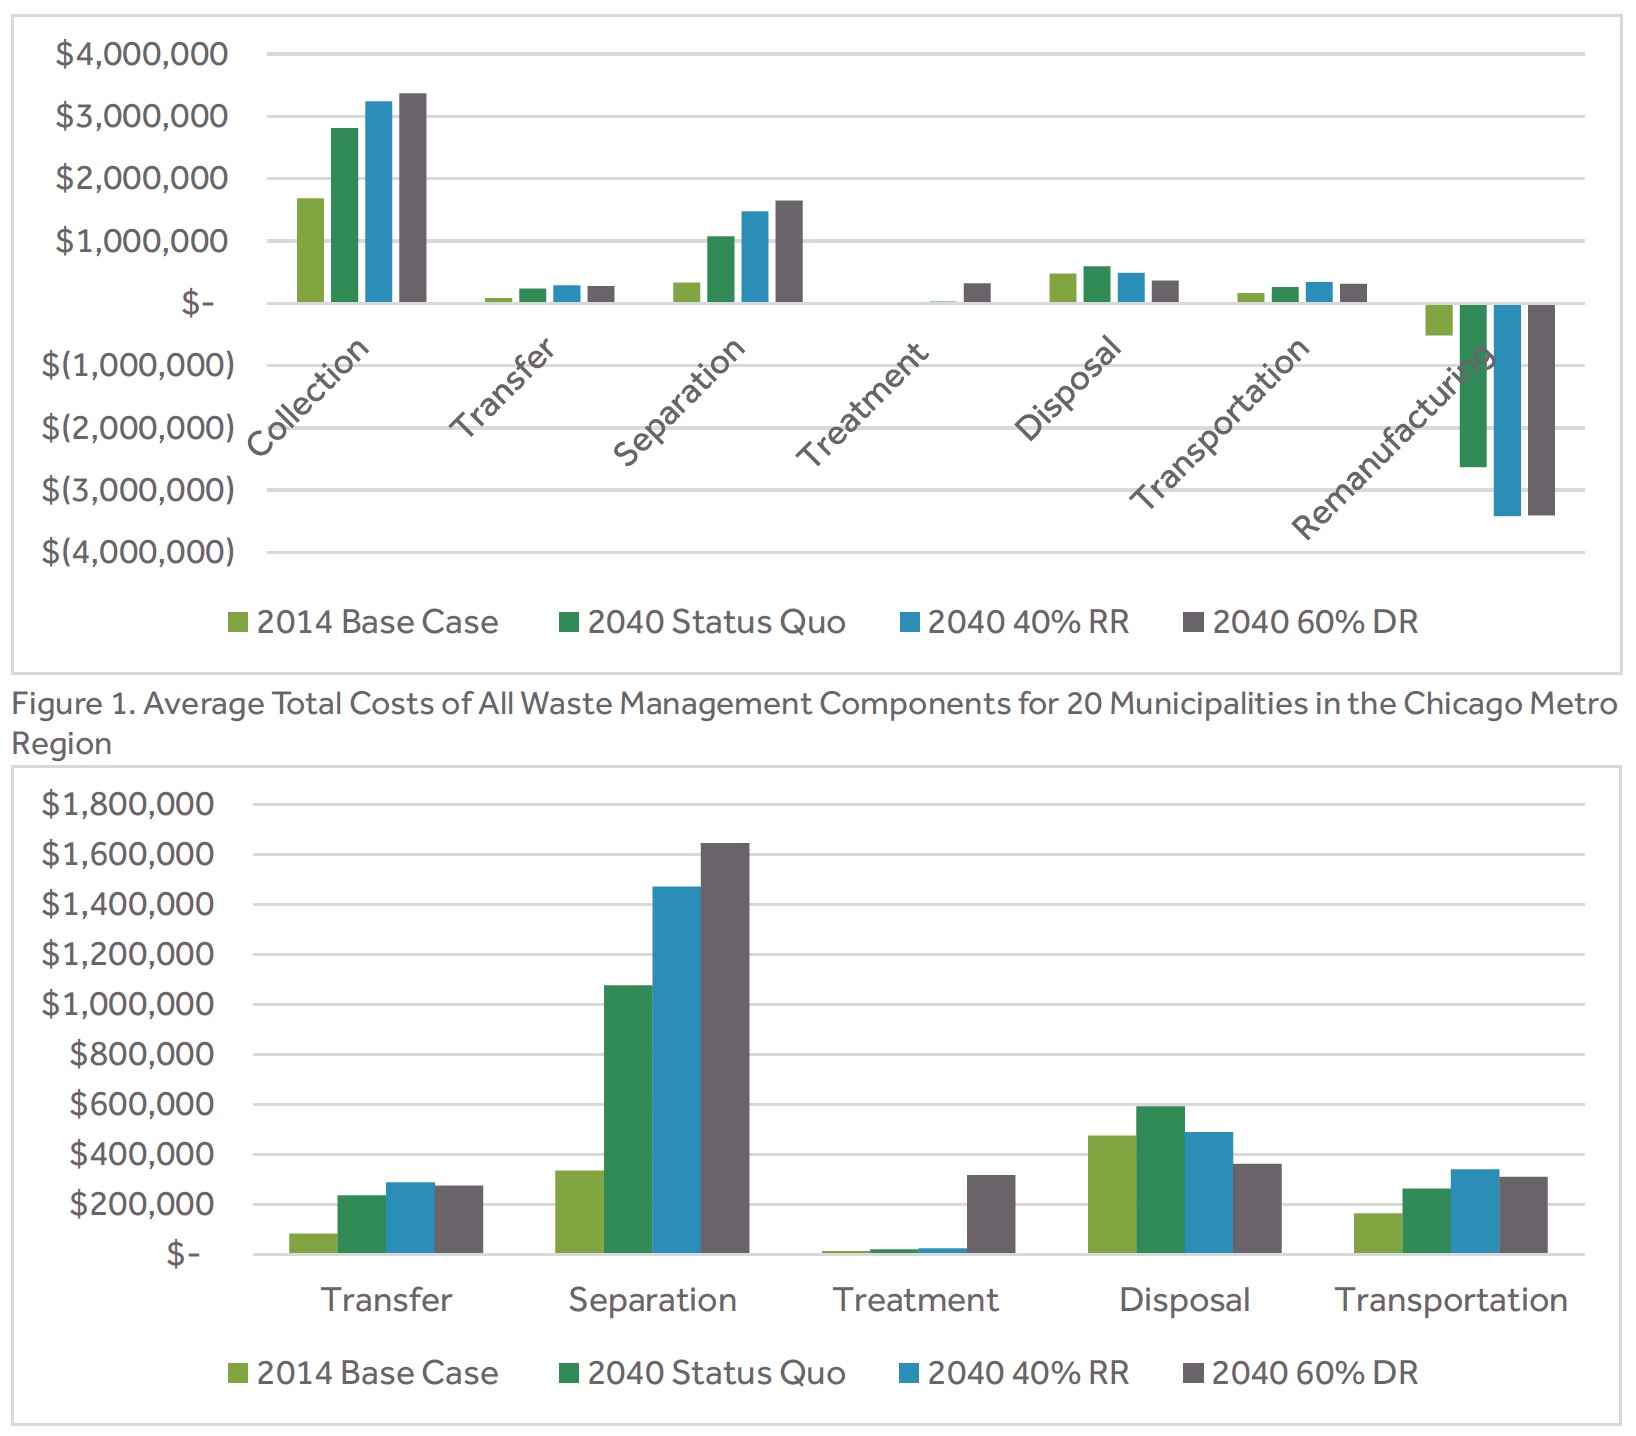 Figure 1. Average Total Costs of All Waste Management Components for 20 Municipalities in the Chicago Metro Region